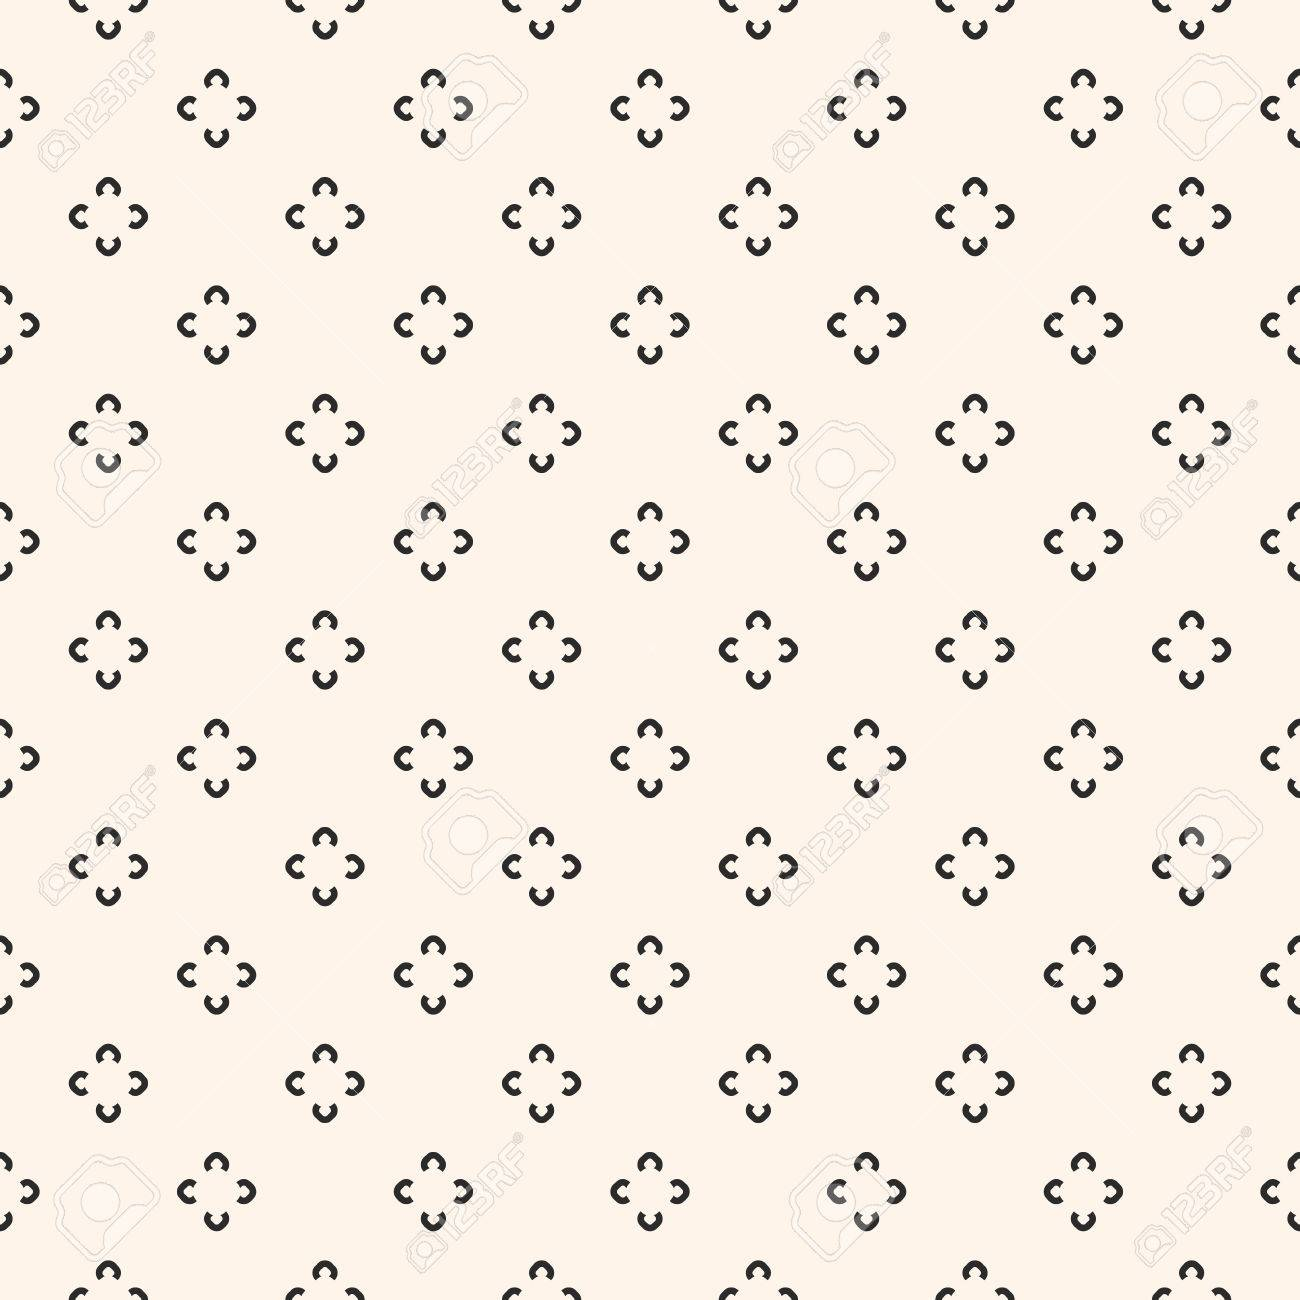 9649fcd61 Simple floral pattern. Vector minimalist seamless texture with tiny flower  shapes. Abstract minimal geometric